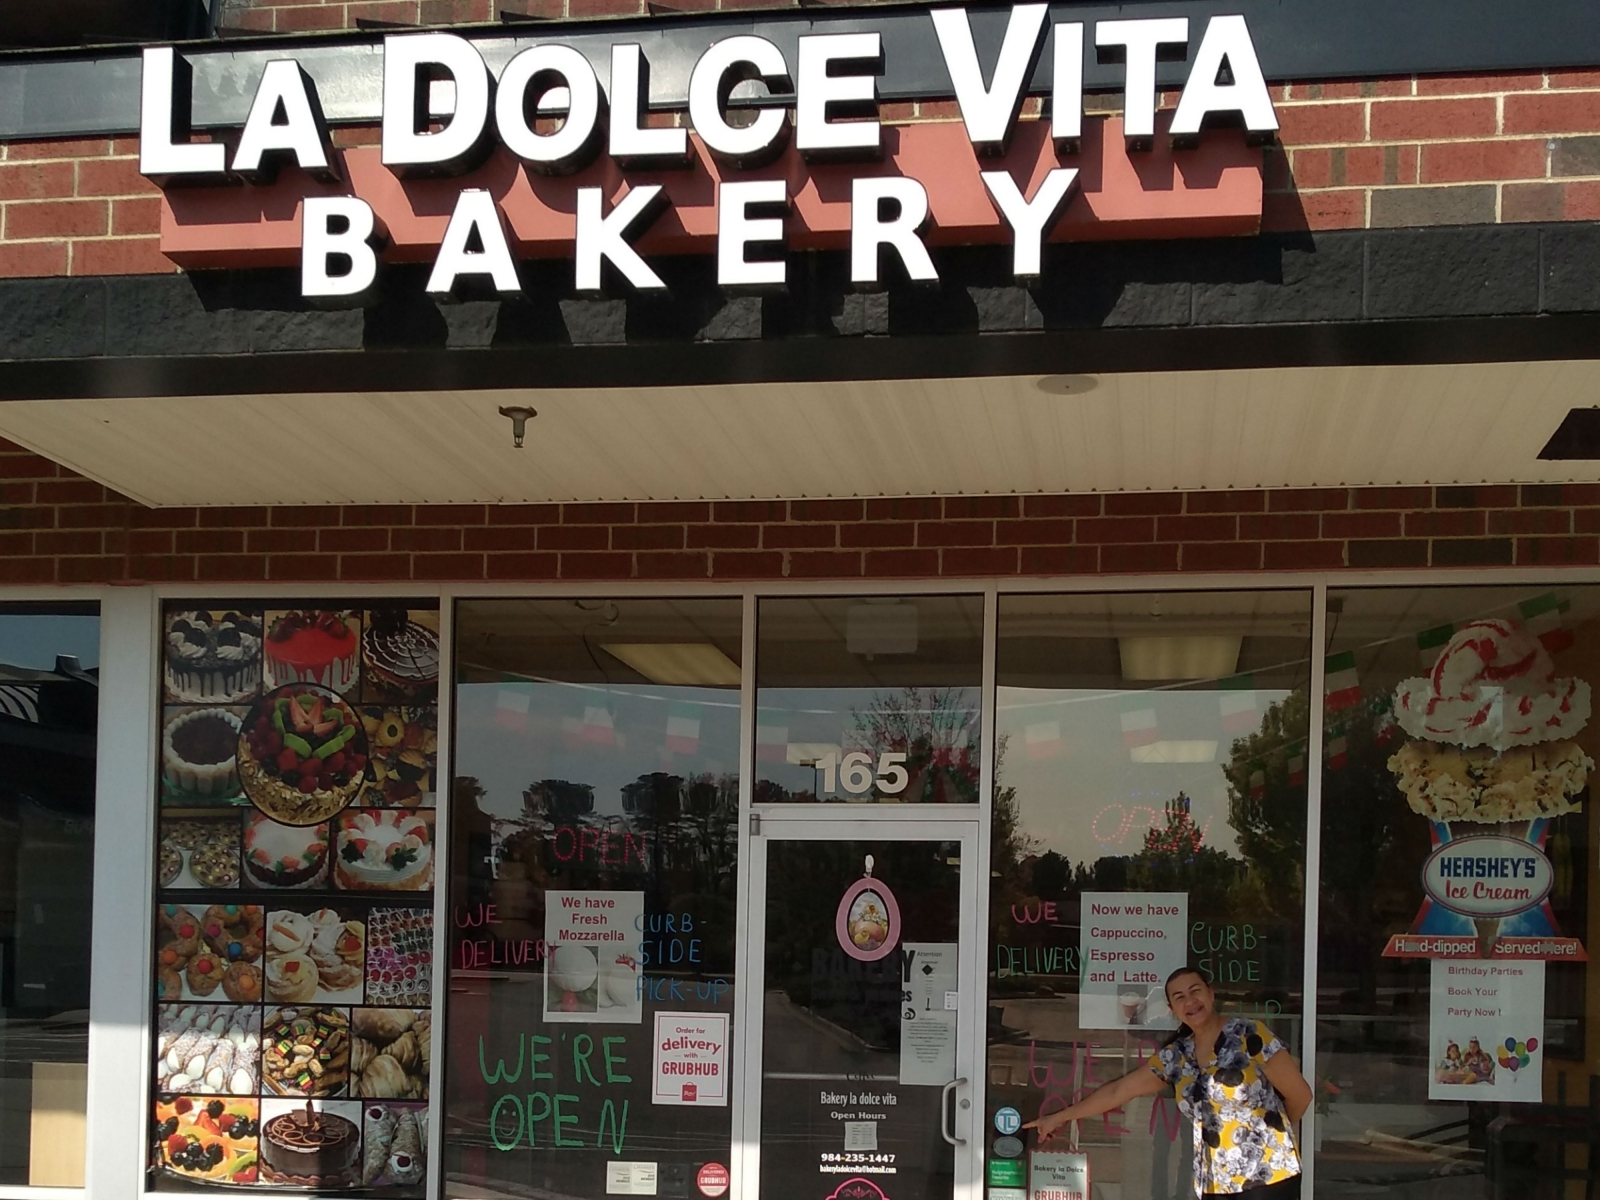 Bakery La Dolce Vita, New York-style, Italian bakery in Wake Forest NC offering made from scratch pastries cakes, pies, cannolis and more.